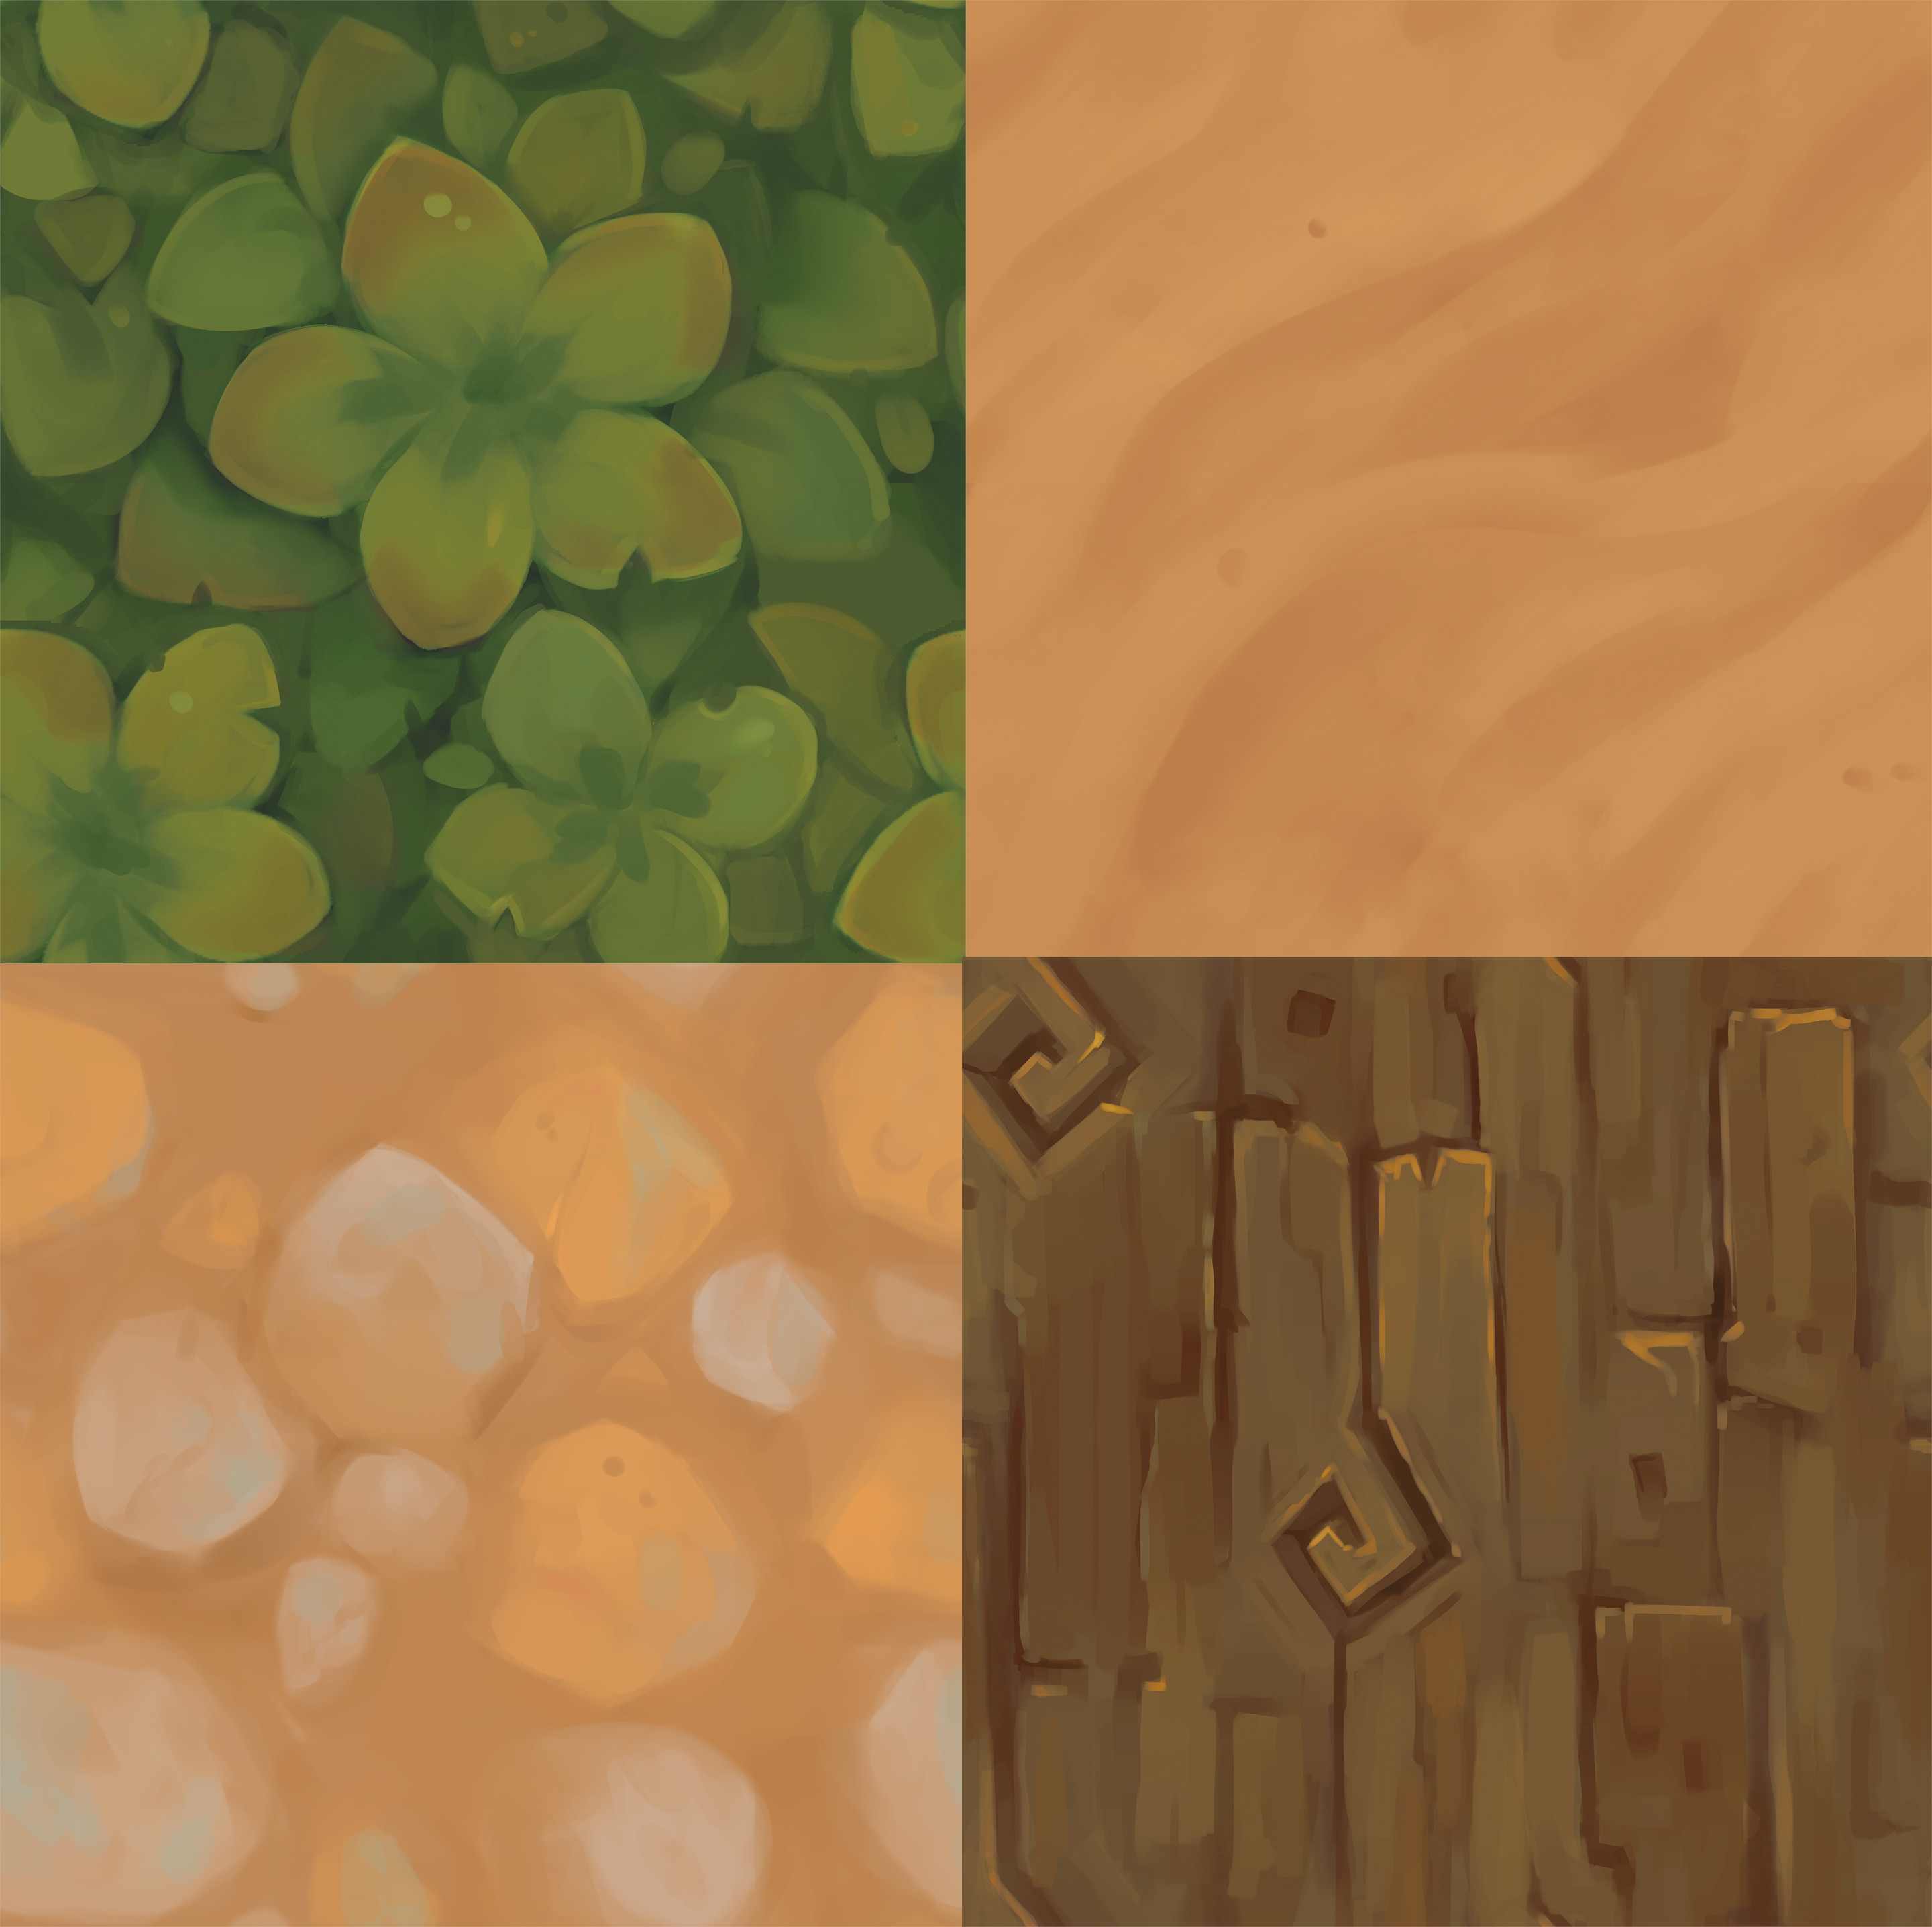 First batch of handpainted textures